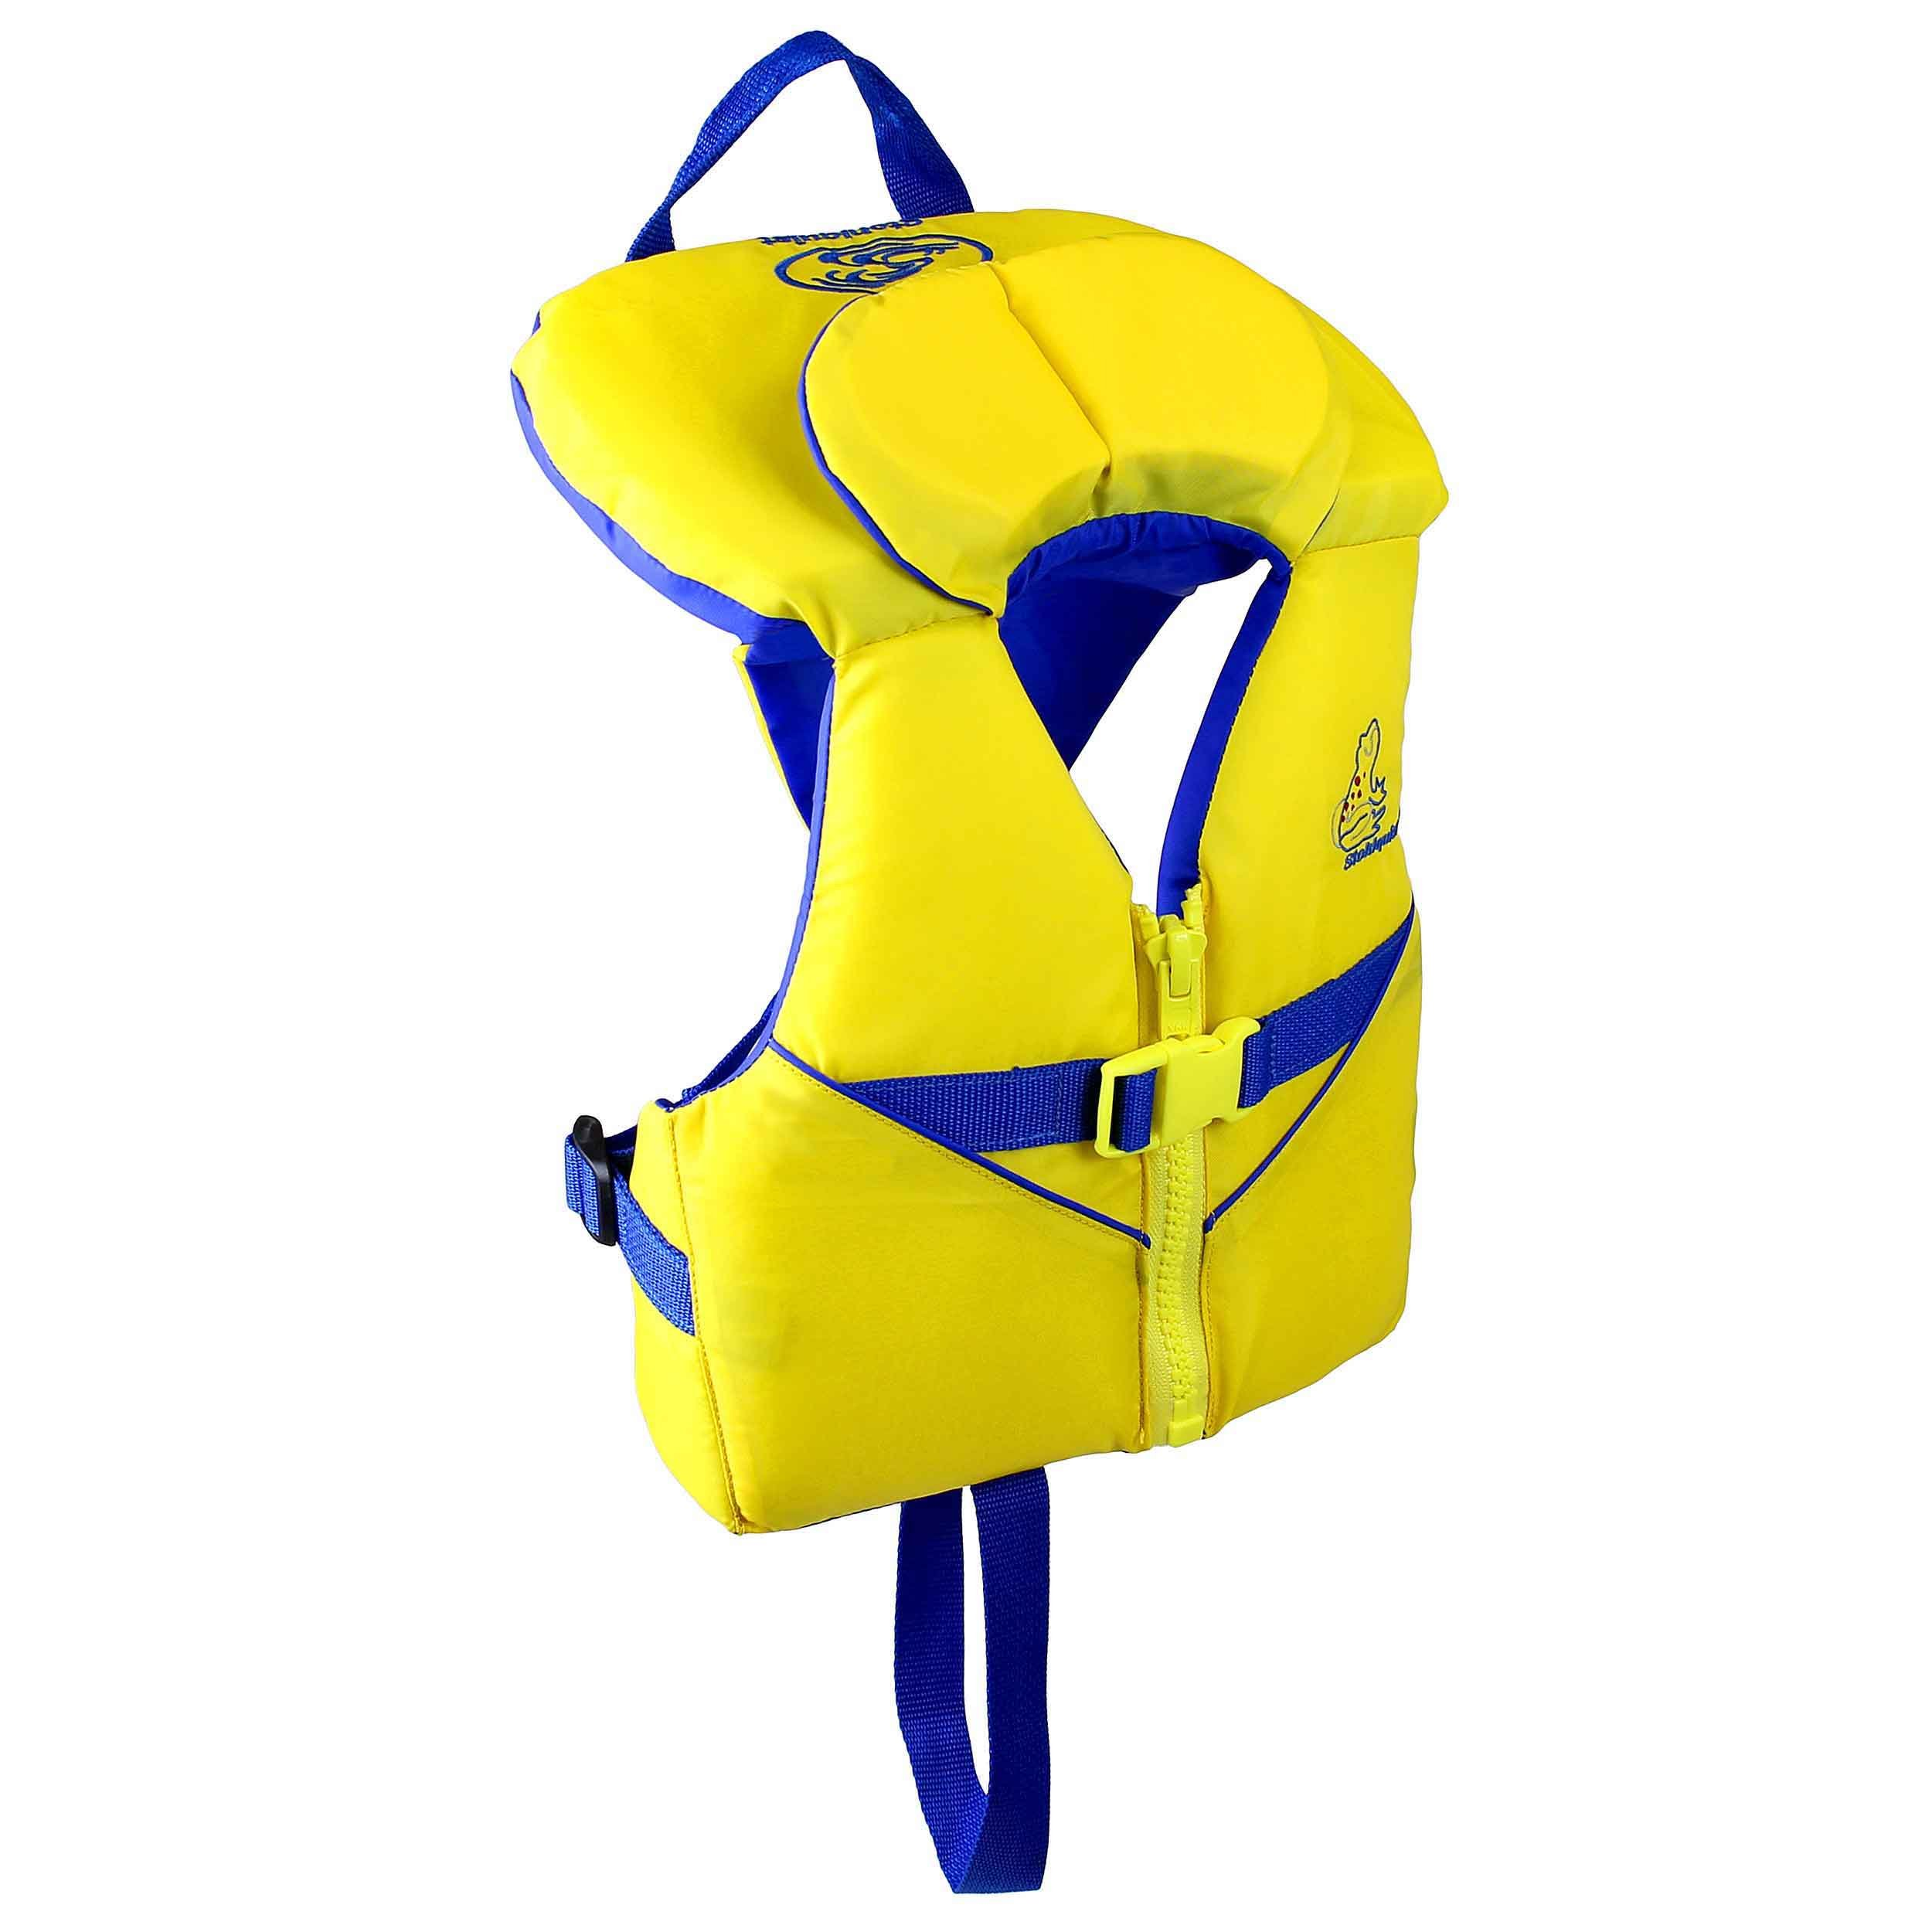 Stohlquist Infant PFD 8-30 lbs, Yellow/Blue